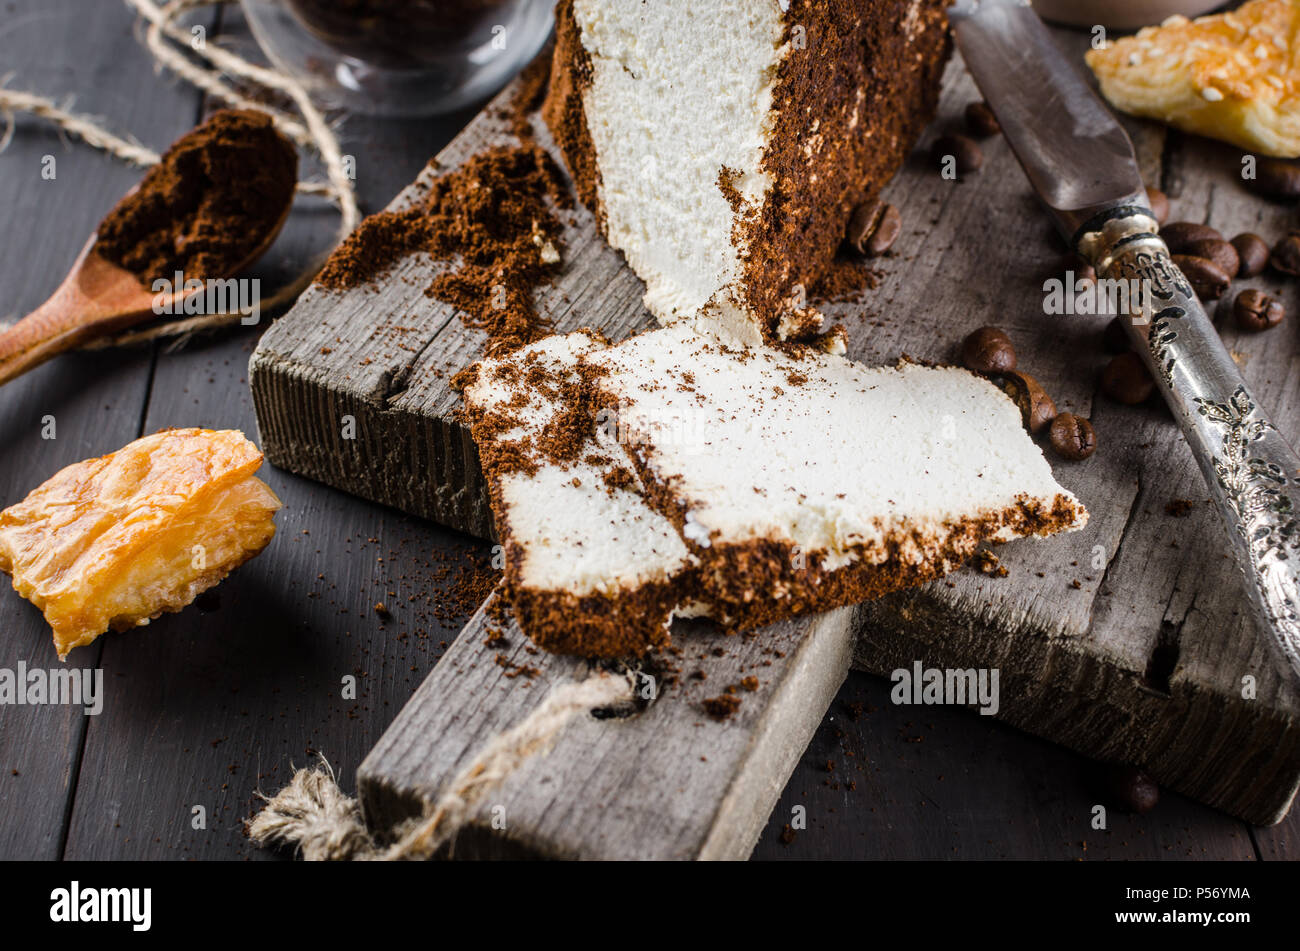 soft homemade cheese wrapped in ground coffee and a cup of coffee with milk breakfast on a wooden table Stock Photo